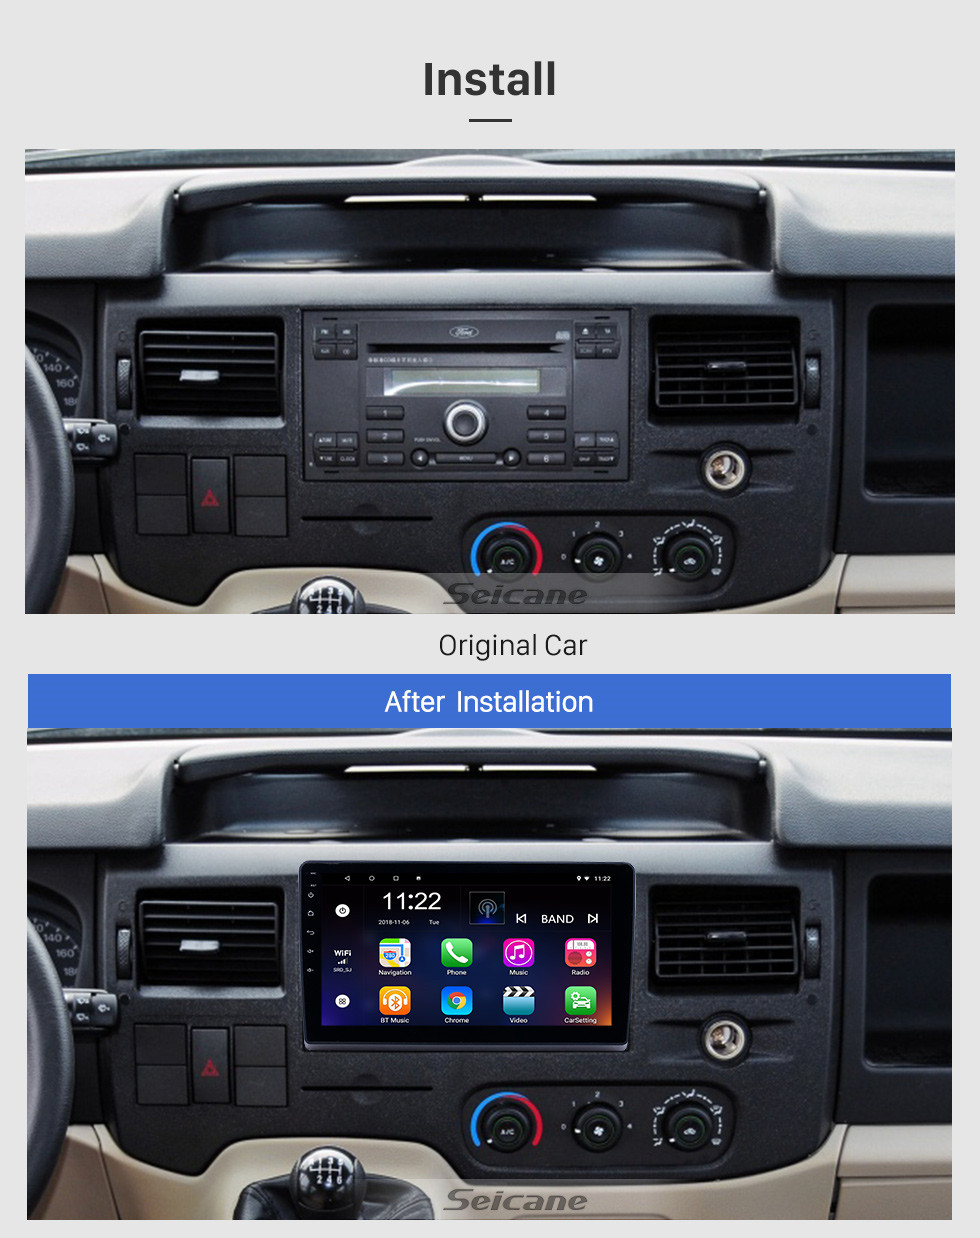 Seicane 10,1 Zoll Android 9.0 Radio für 2009-2019 Ford New Transit Bluetooth WIFI HD Touchscreen GPS-Navigation Carplay USB-Unterstützung TPMS DAB +